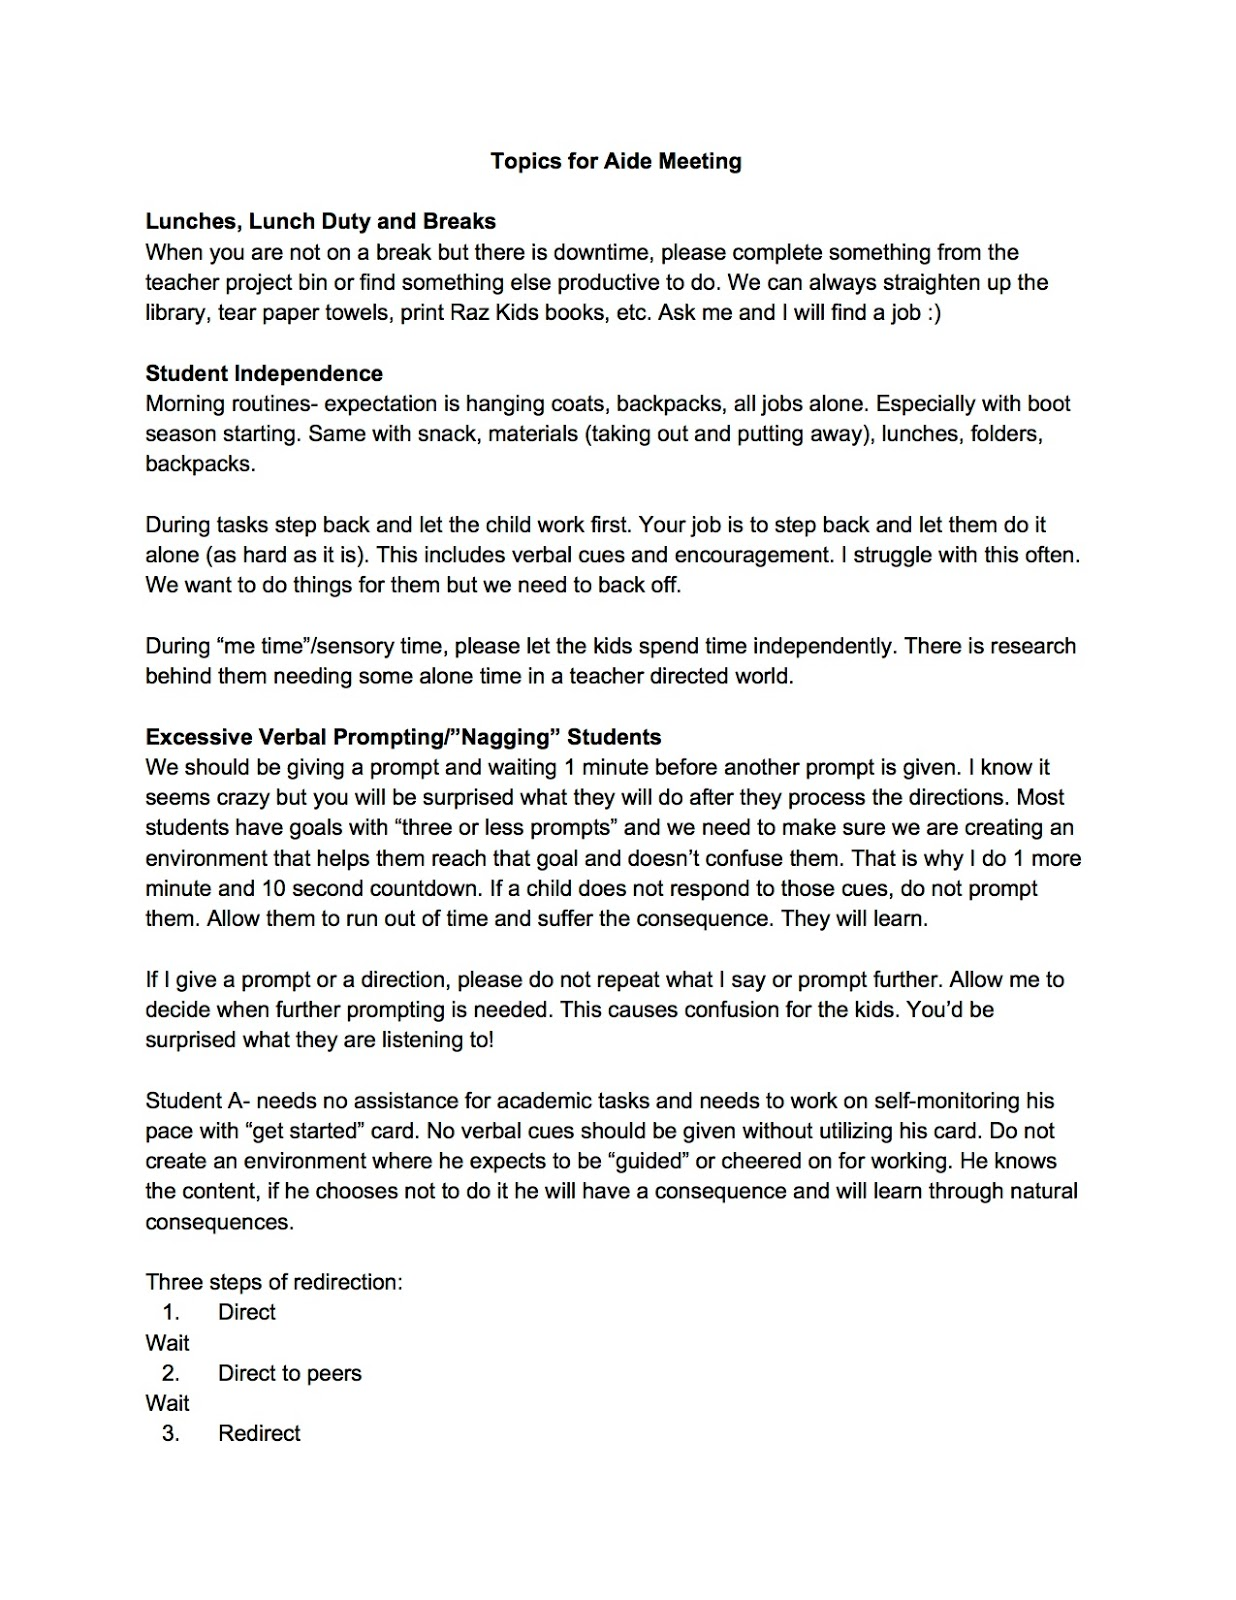 the eager teacher here is an example of an agenda for my monthly aide meeting this is a very informal write up of the key points i would discuss in a monthly meeting